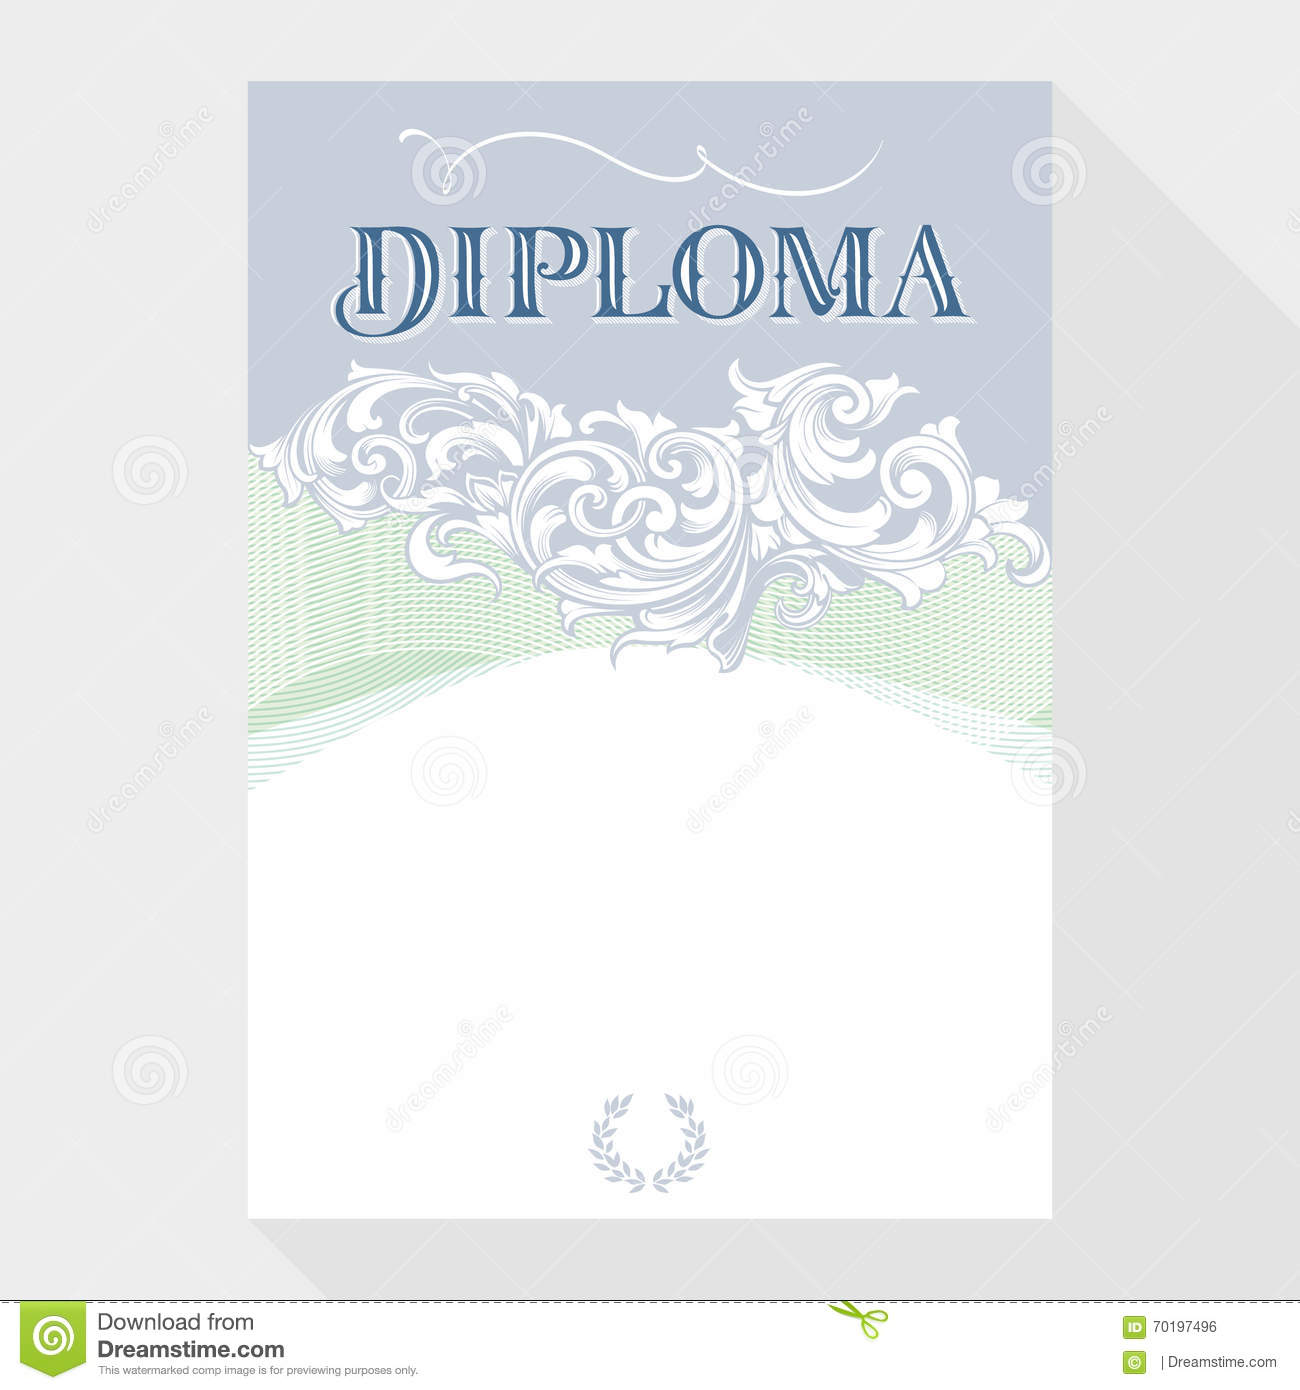 Certificate design template in baroque style